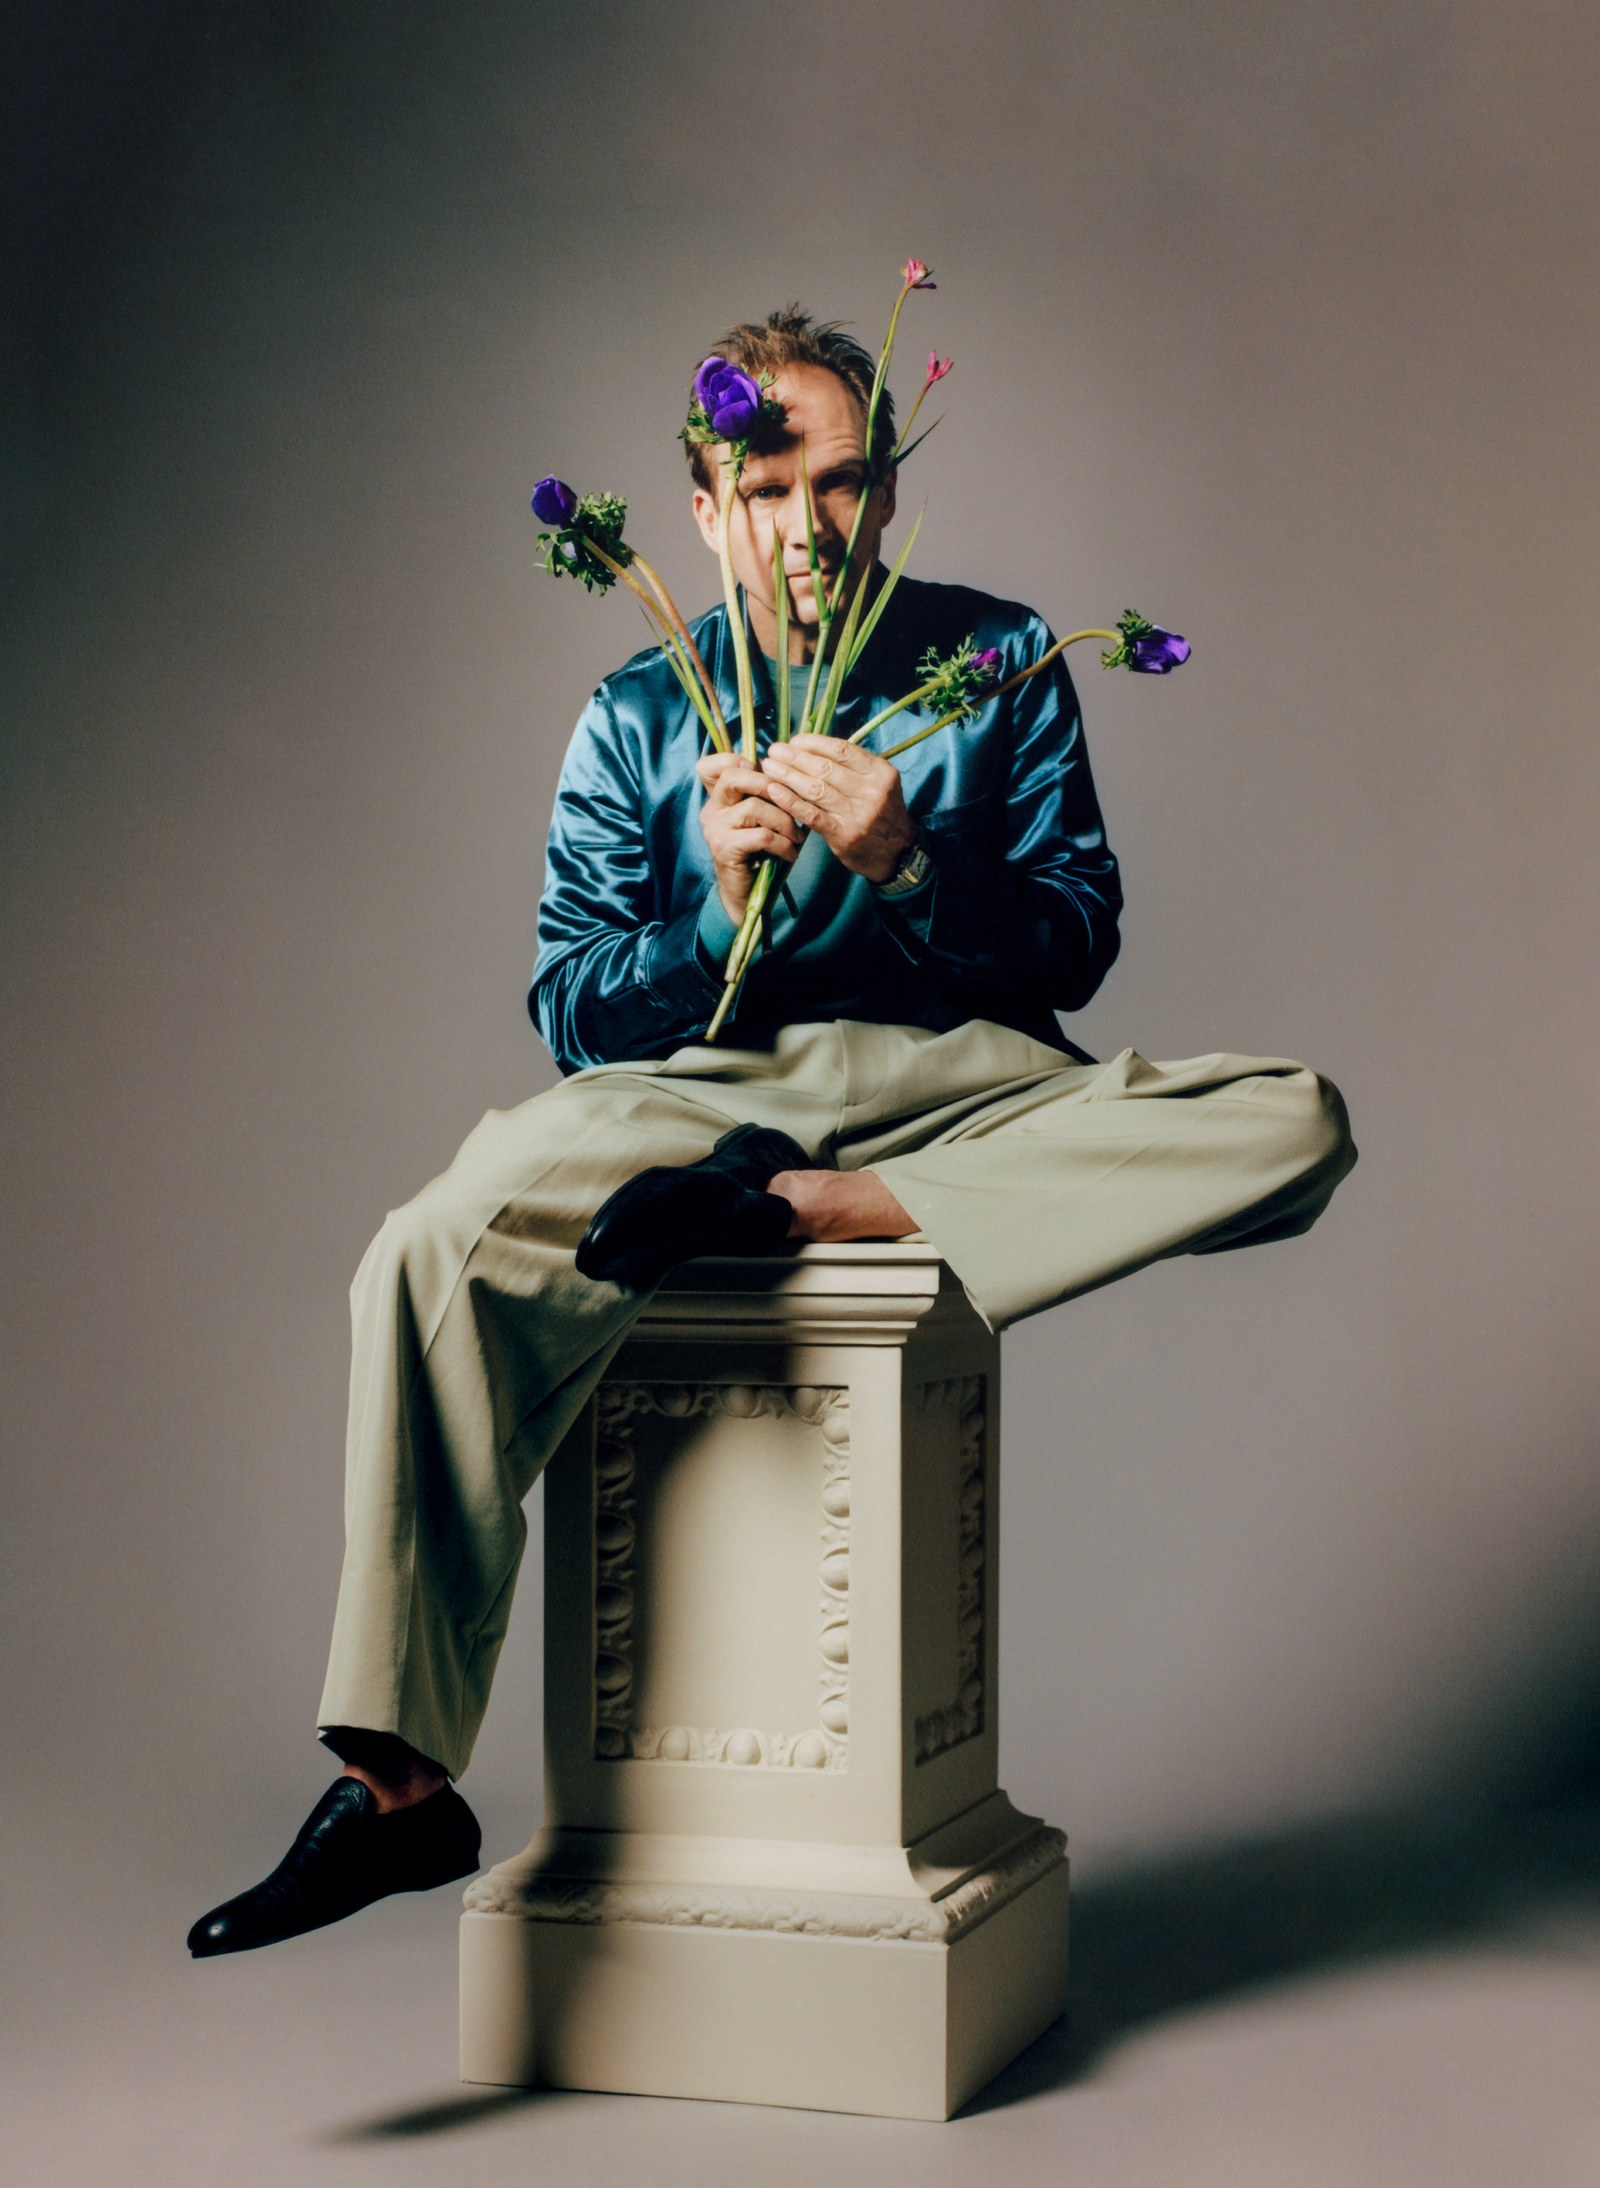 """Ralph Fiennes poses playfully during a photo shoot for """"GQ""""."""